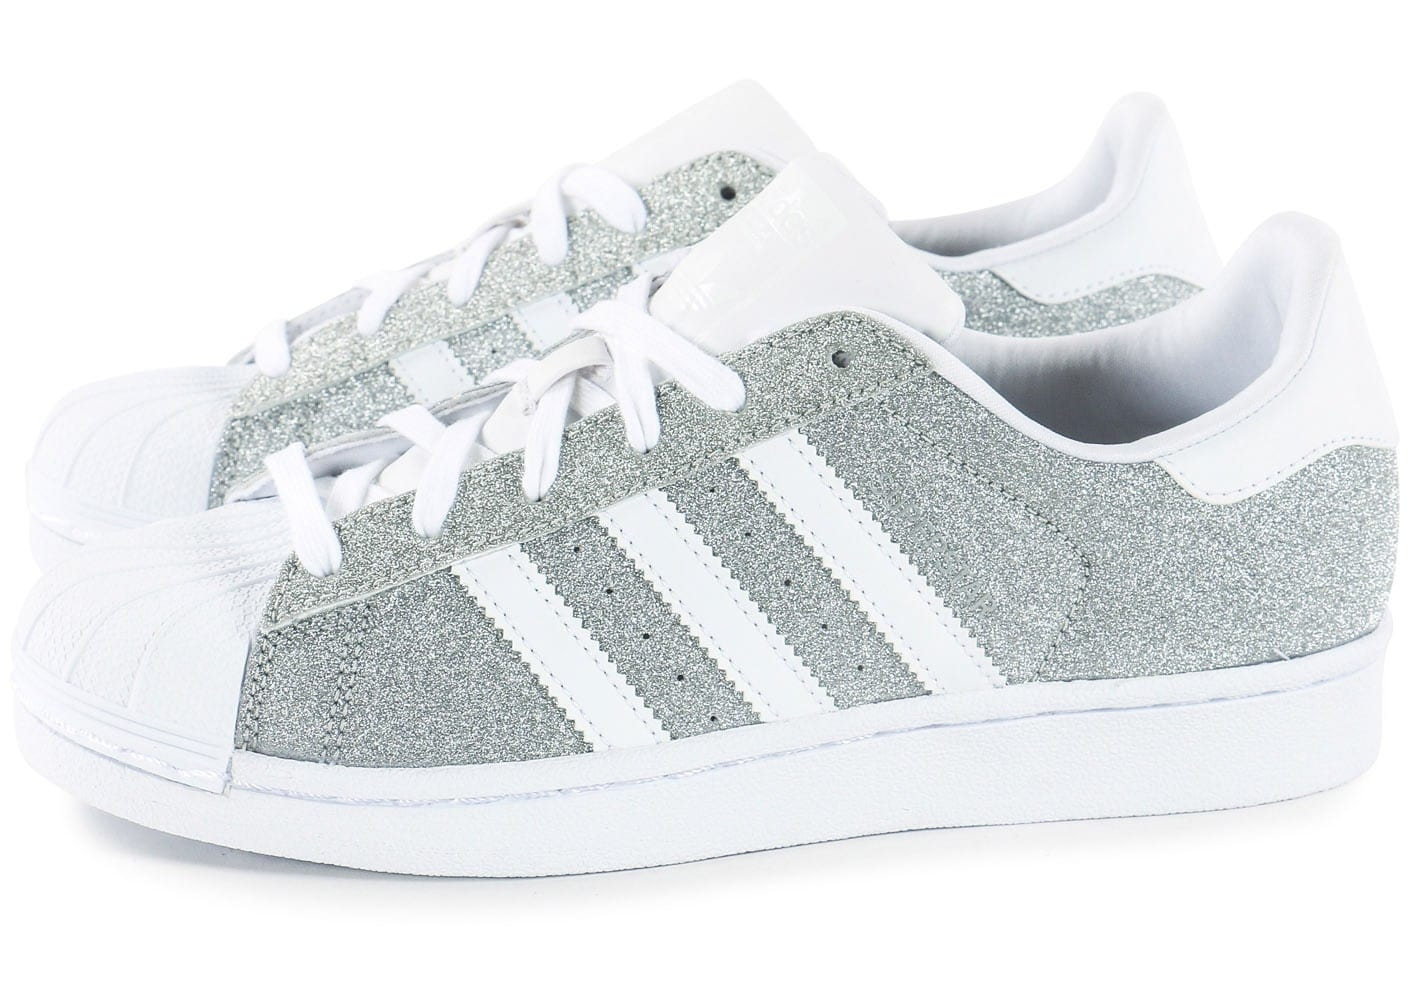 adidas superstar chausport,chaussures adidas superstar